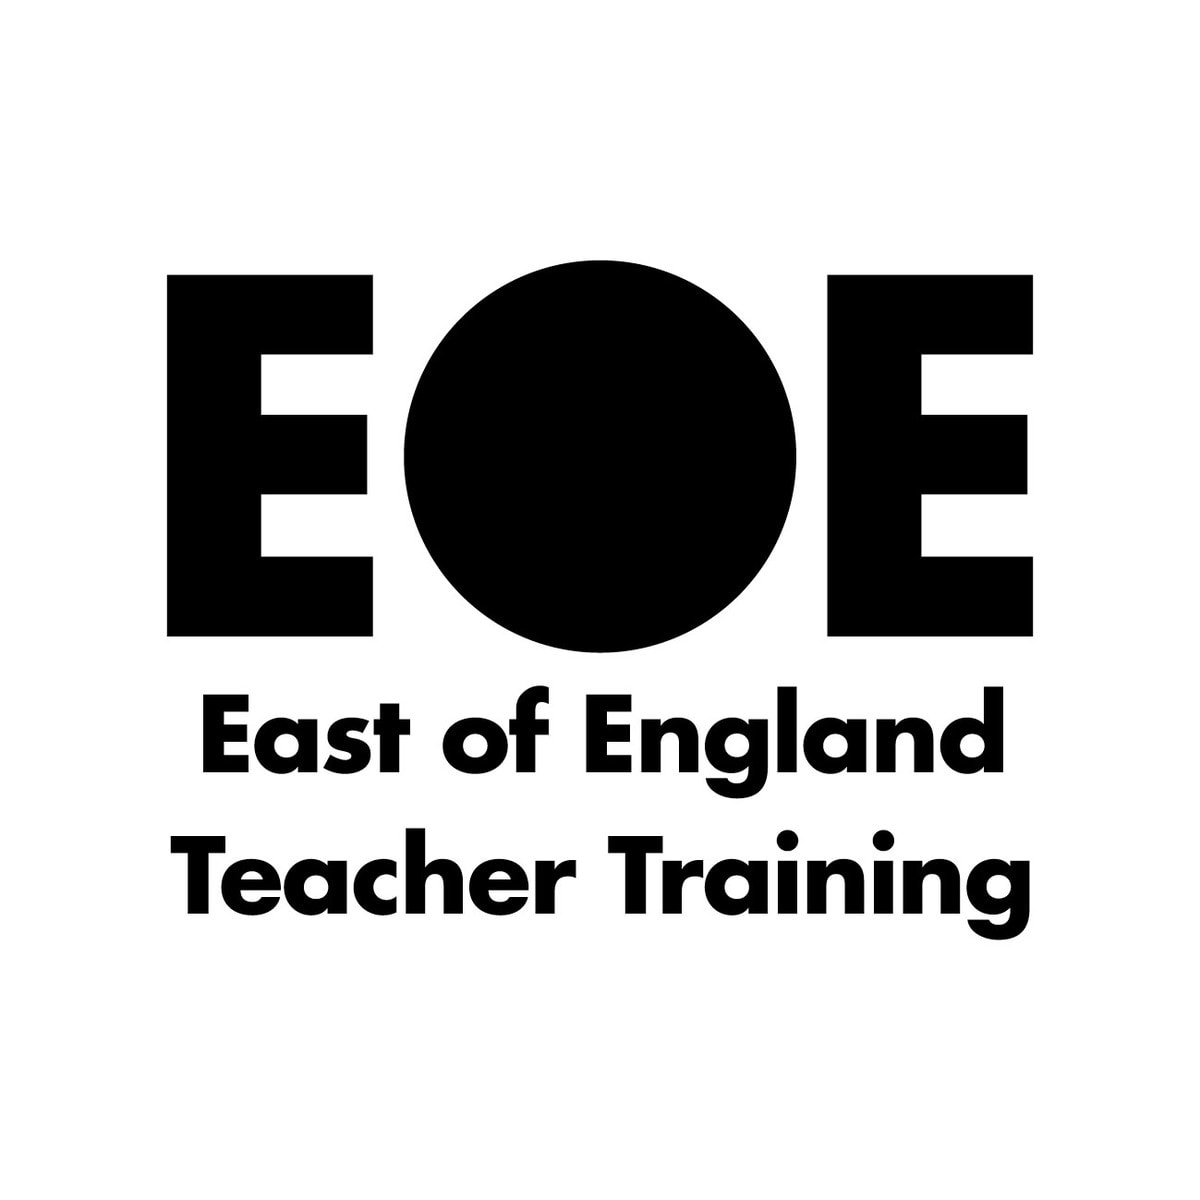 East of England Teacher Training